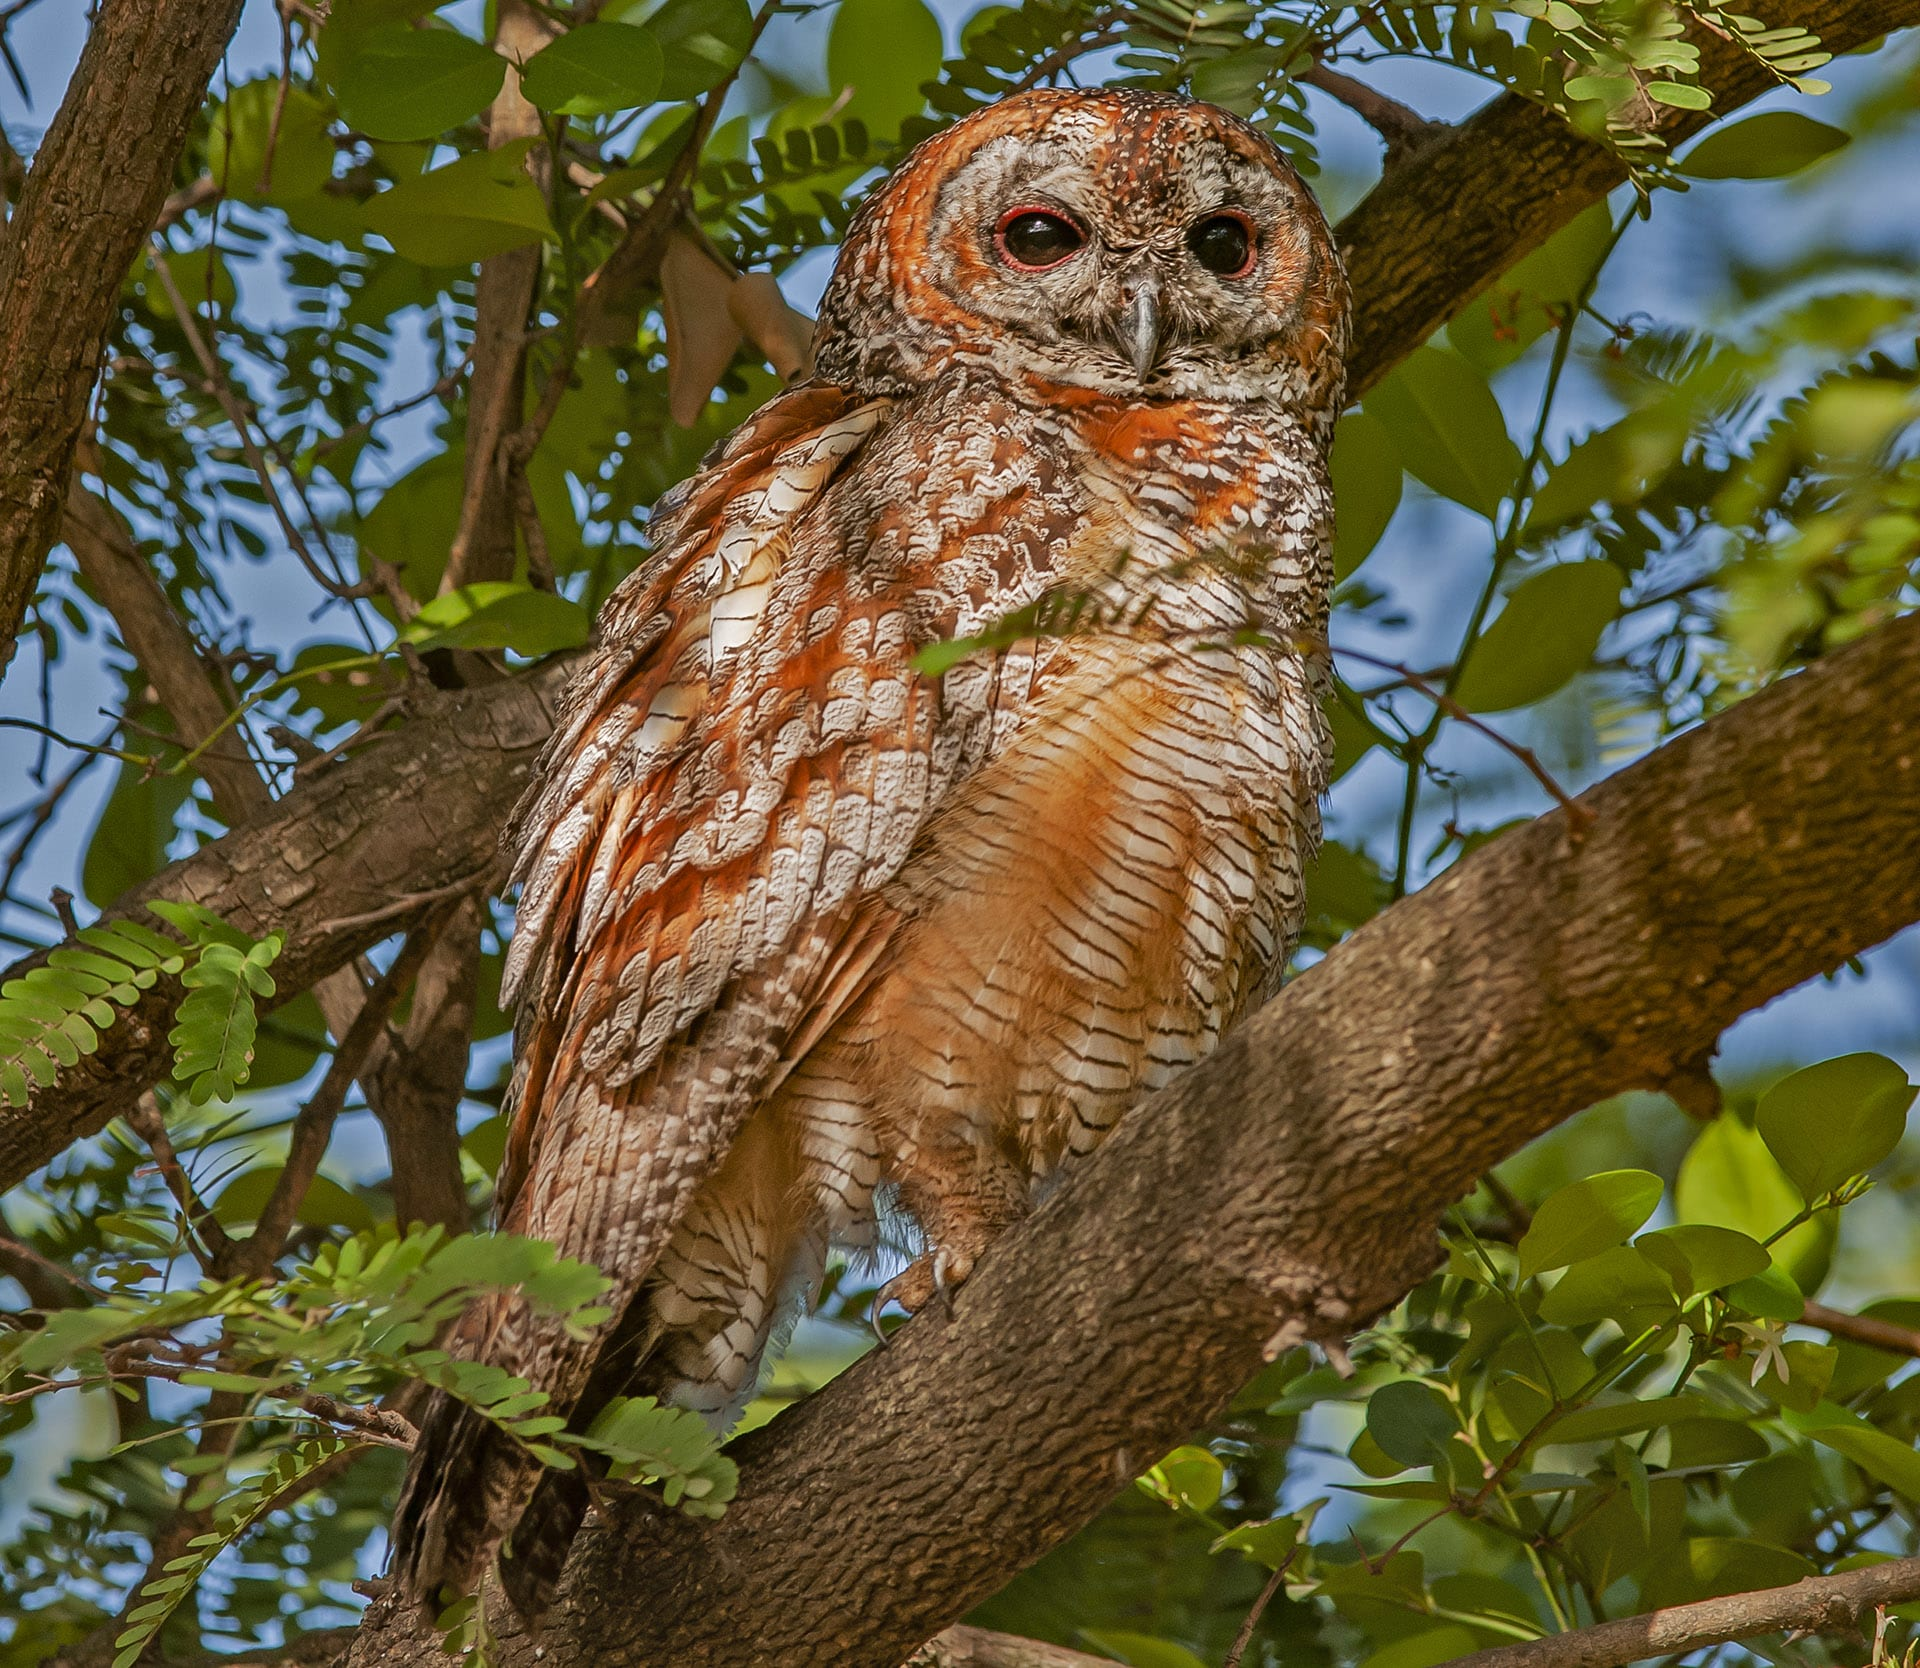 During the day, most nocturnal and crepuscular owls will often roost at a specific spot. In large national parks, forest guides and locals will often know the exact location of a roost, and can point out birds like this mottled wood owl (Strix ocellata), photographed in Gir National Park. They are also seen in open woodlands, like Kanha and Bandhavgarh in Madhya Pradesh. These large owls are well camouflaged against trees, but can be recognised by their loud, distinct hoot. Mottled wood owls are adept hunters, and deftly make a meal of small mammals like rodents and hares.